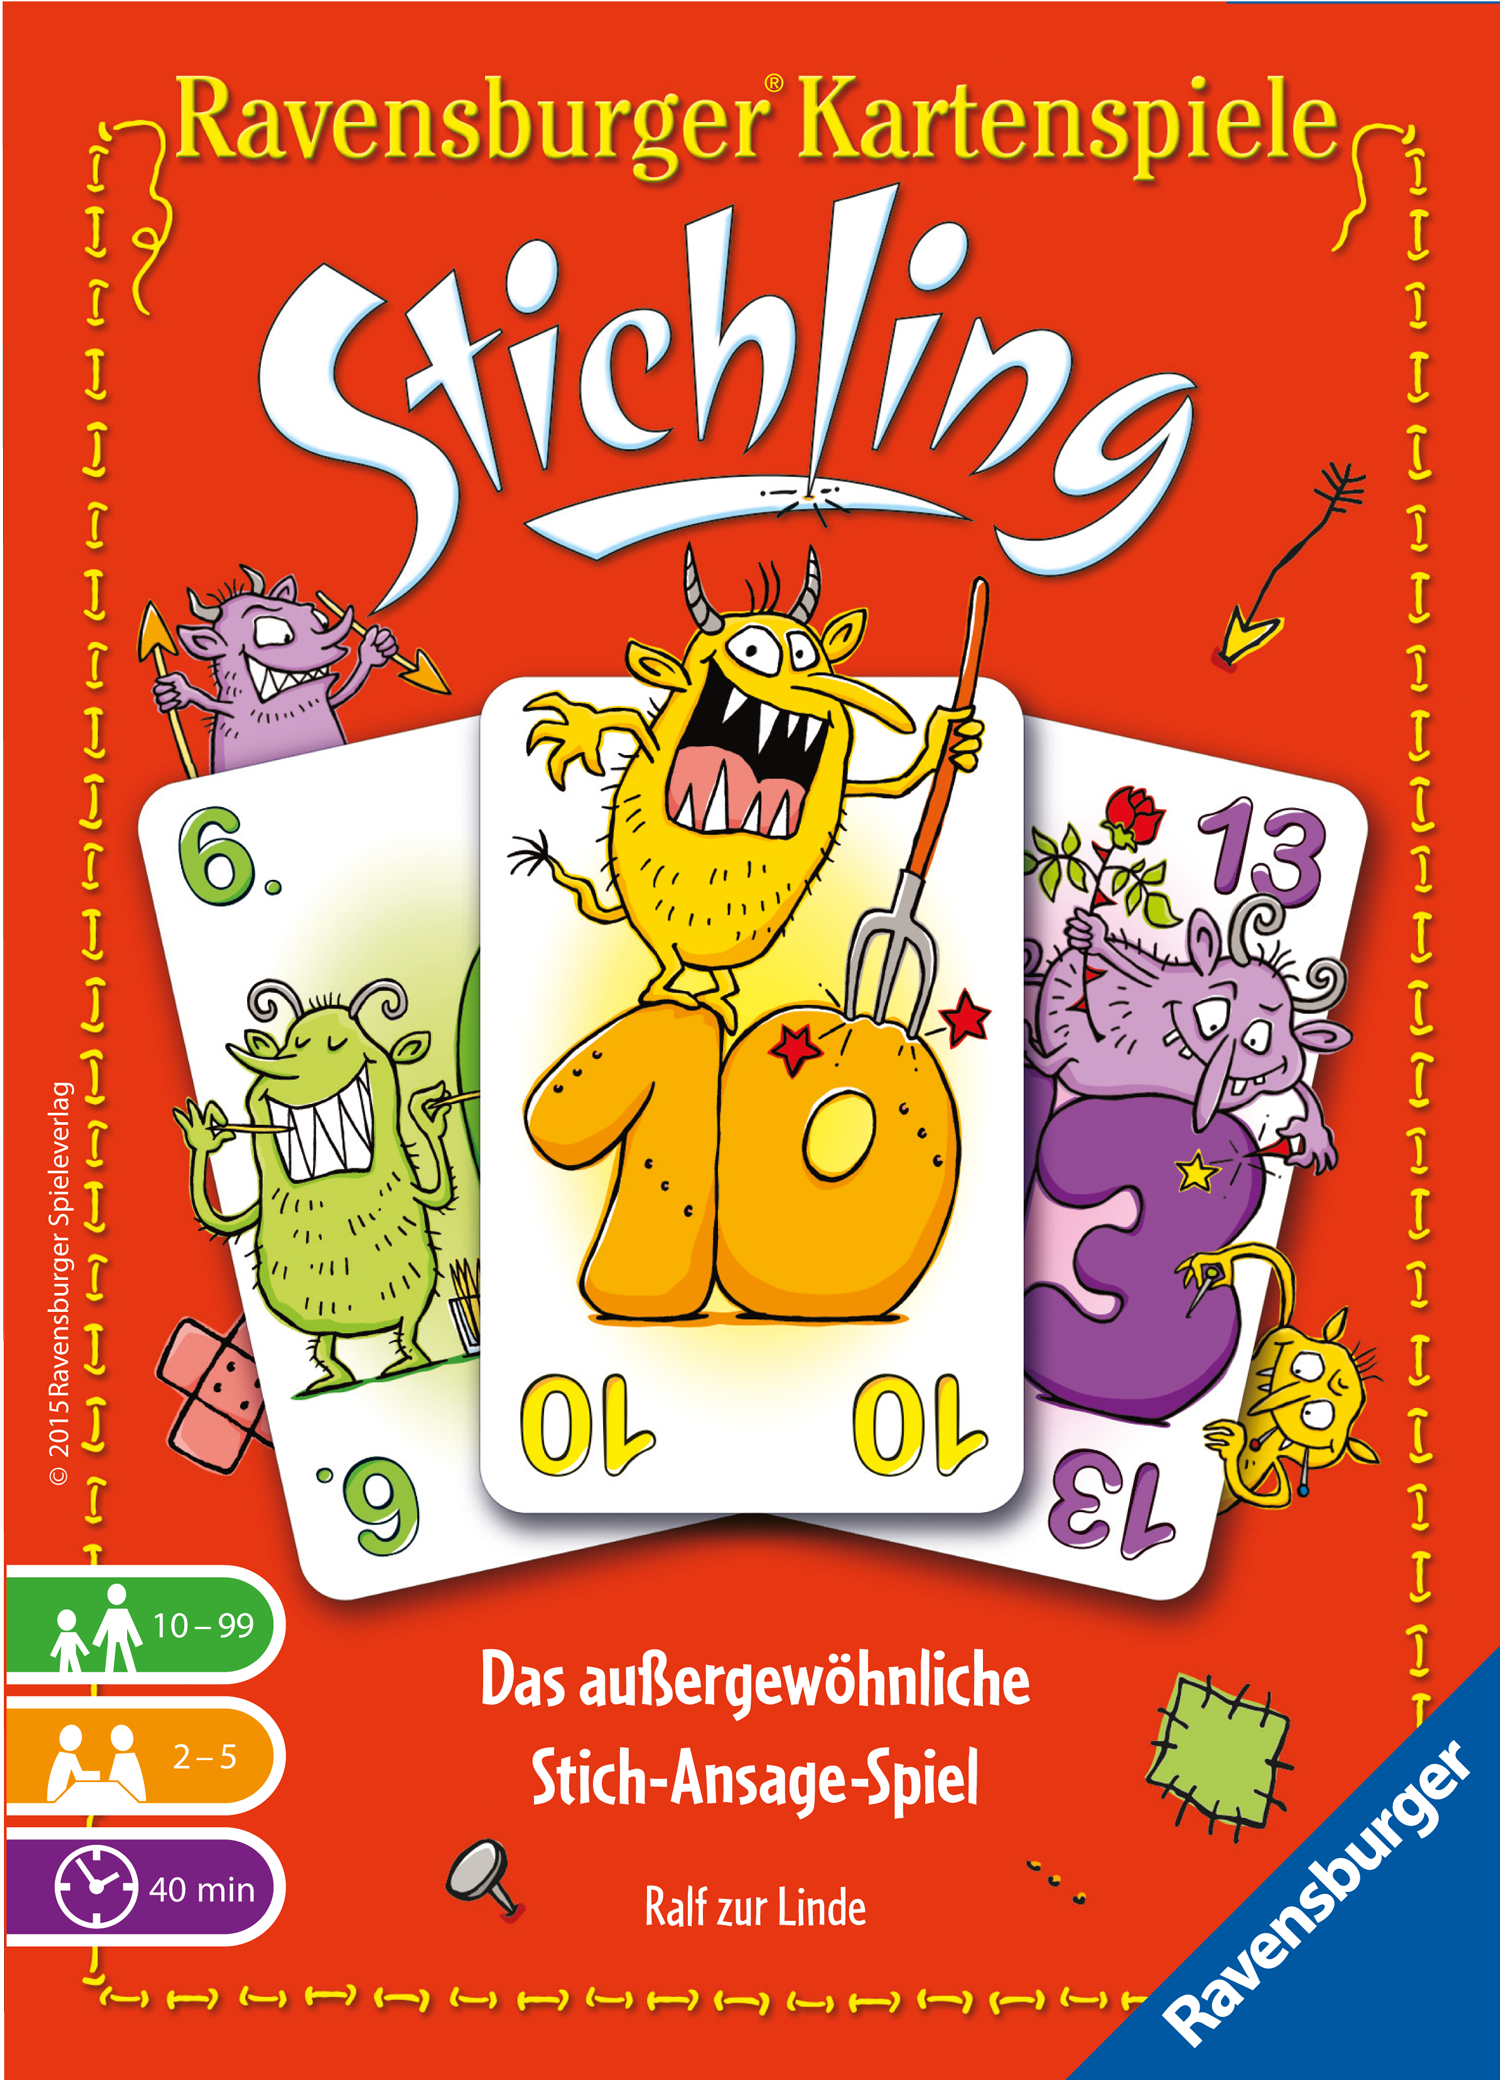 Stichling Packung